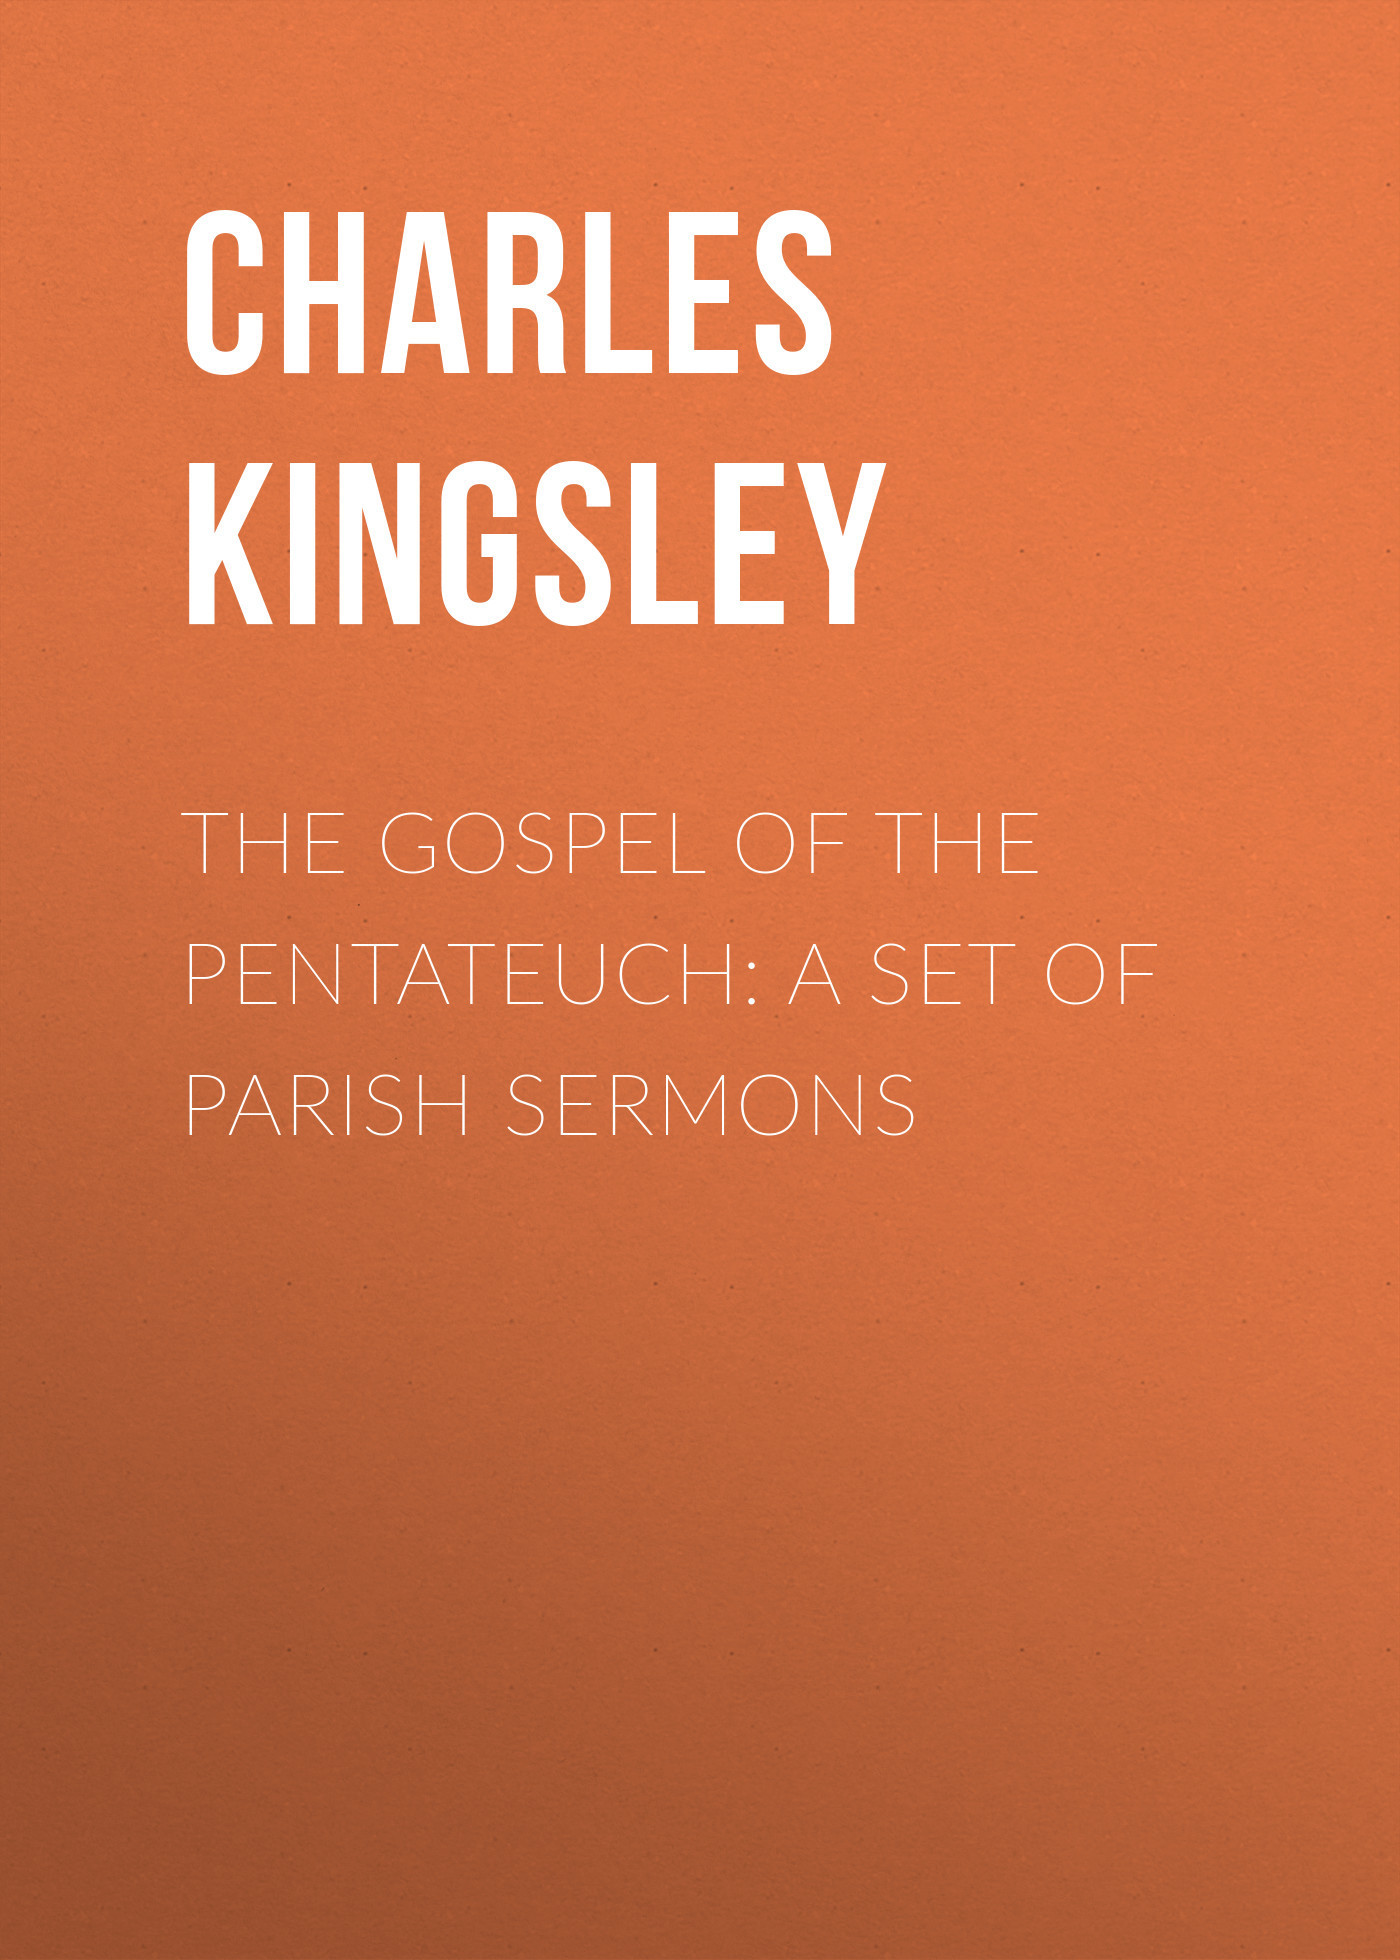 Charles Kingsley The Gospel of the Pentateuch: A Set of Parish Sermons